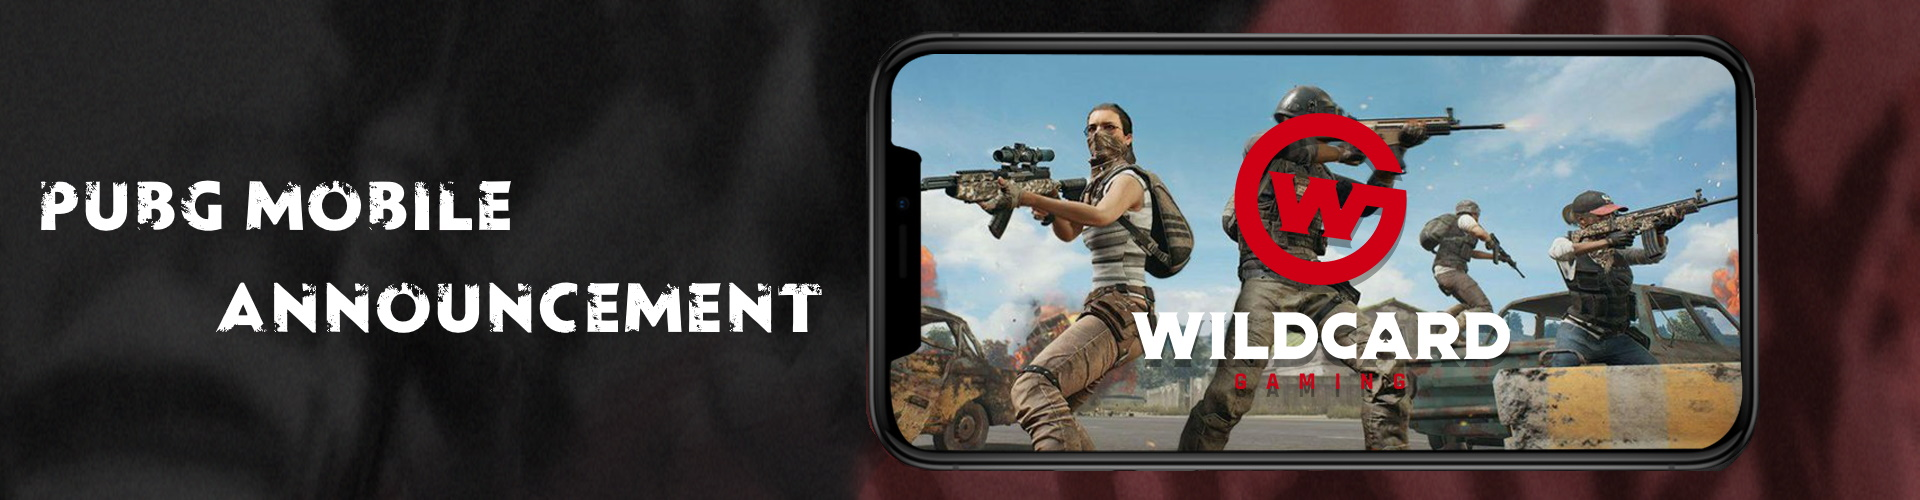 PUBG MOBILE ANNOUNCEMENT